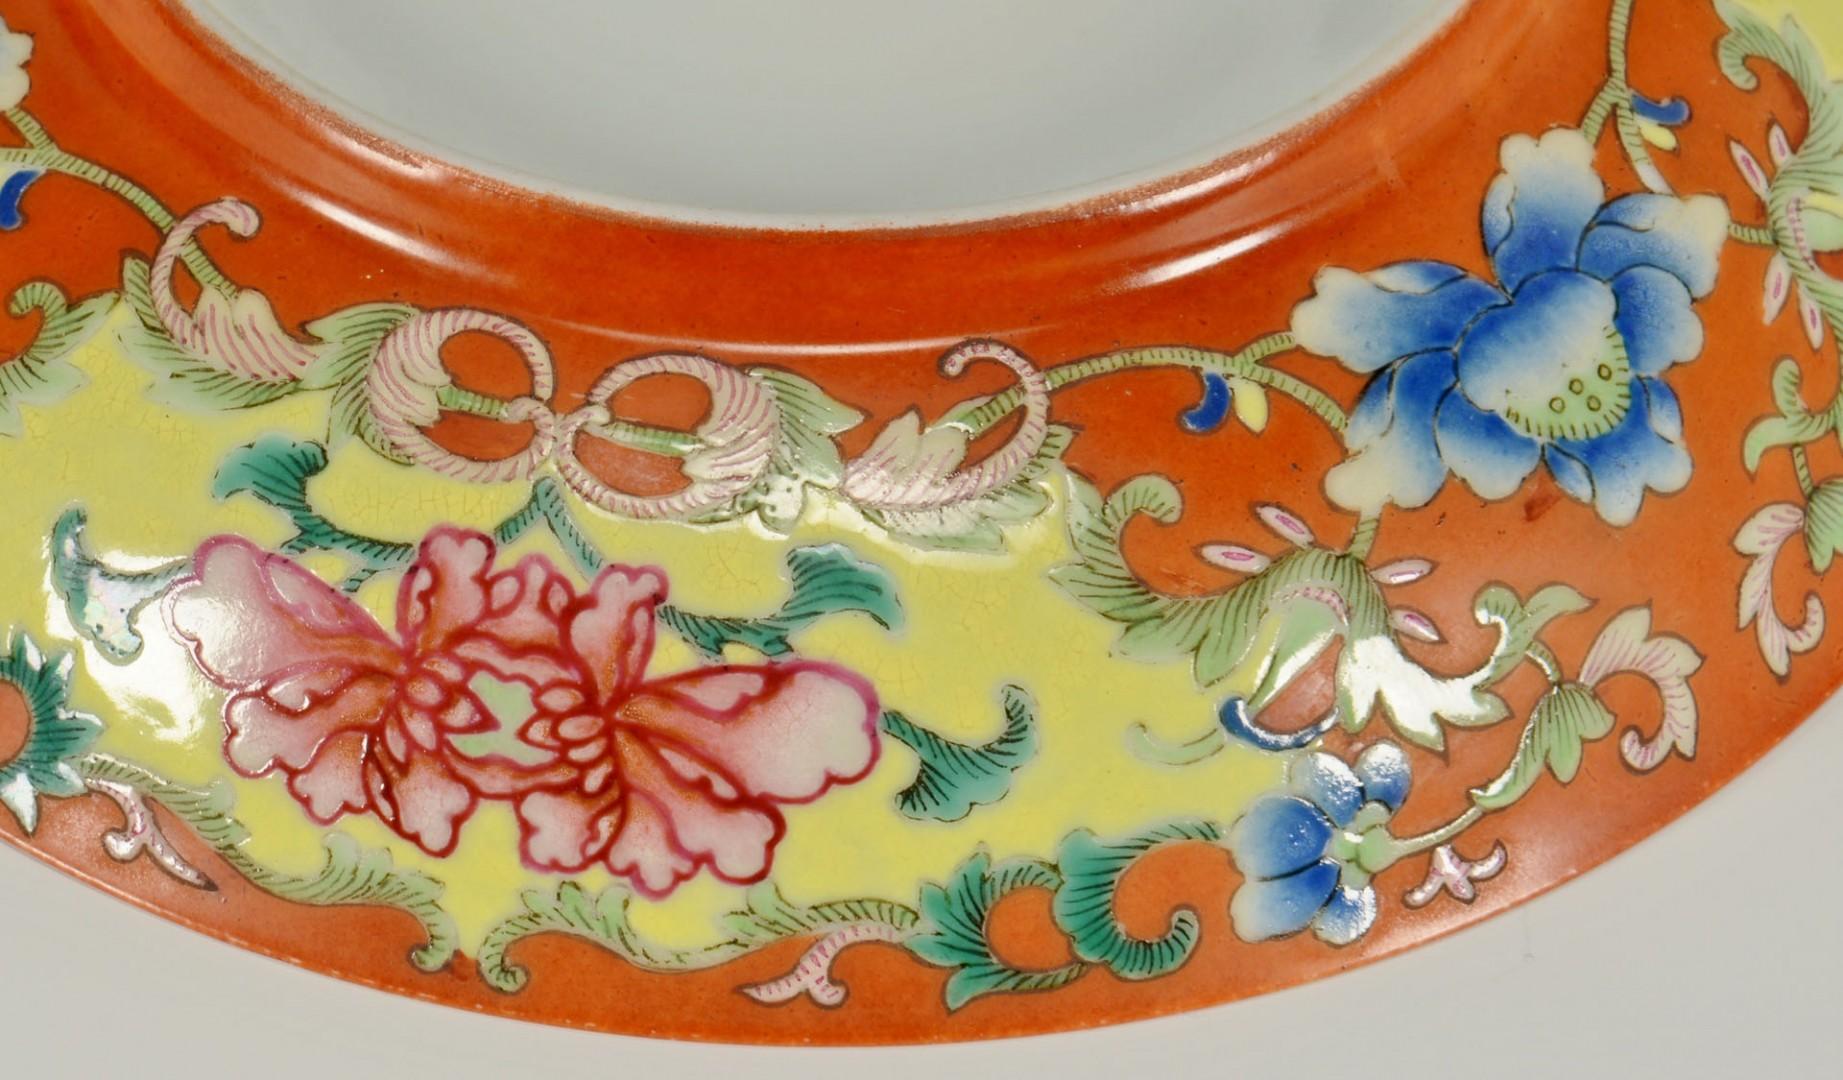 Lot 676: Chinese Famille Rose Saucer Dish